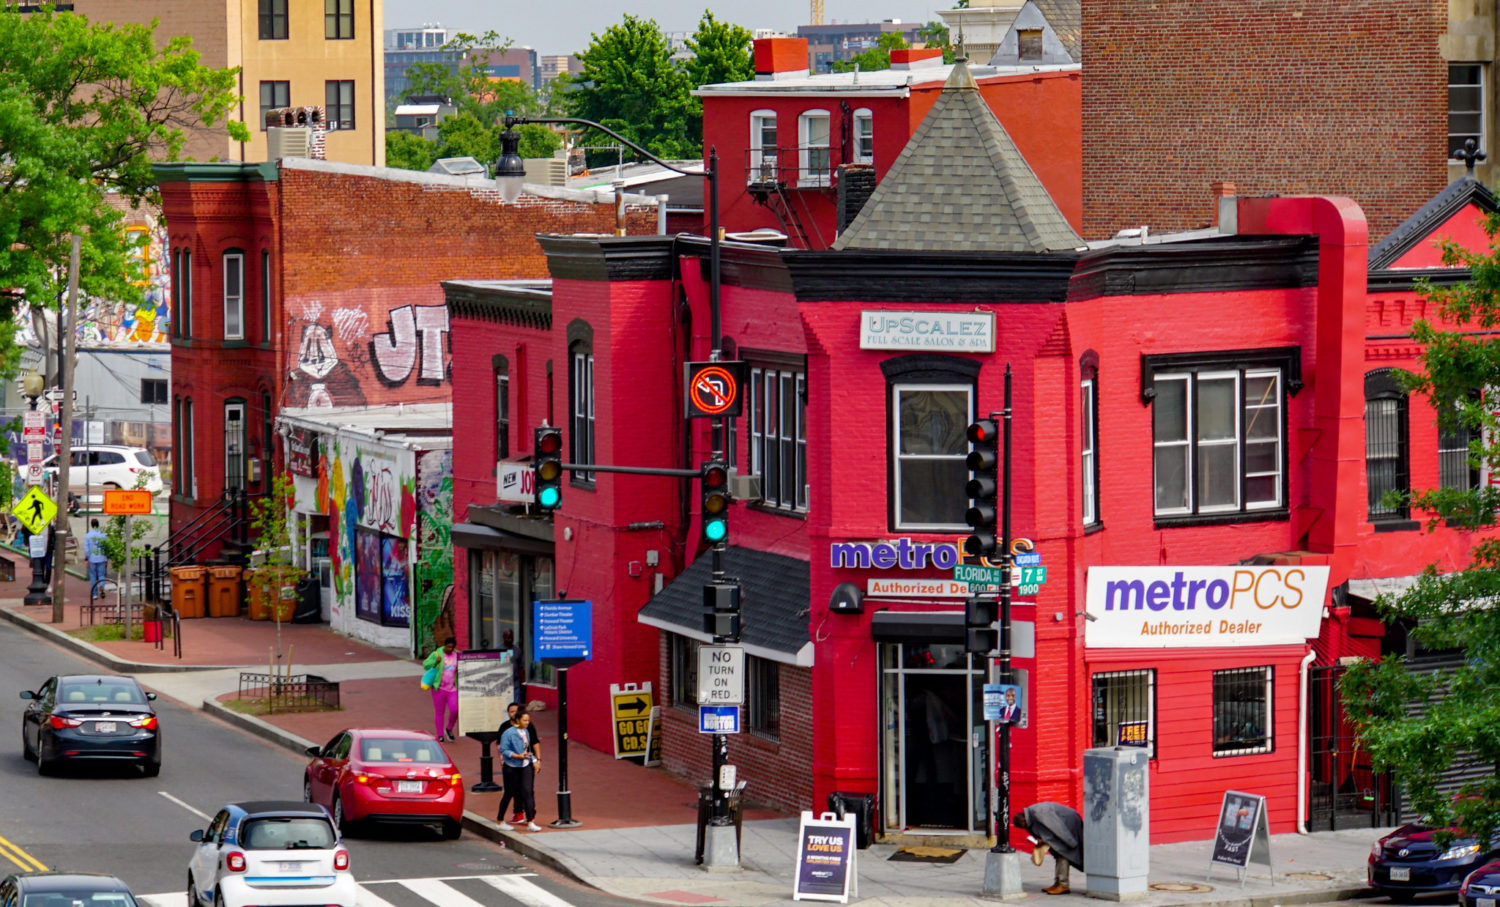 Shaw's Metro PCS Store Has Been Forced To Turn Off Its Go-Go